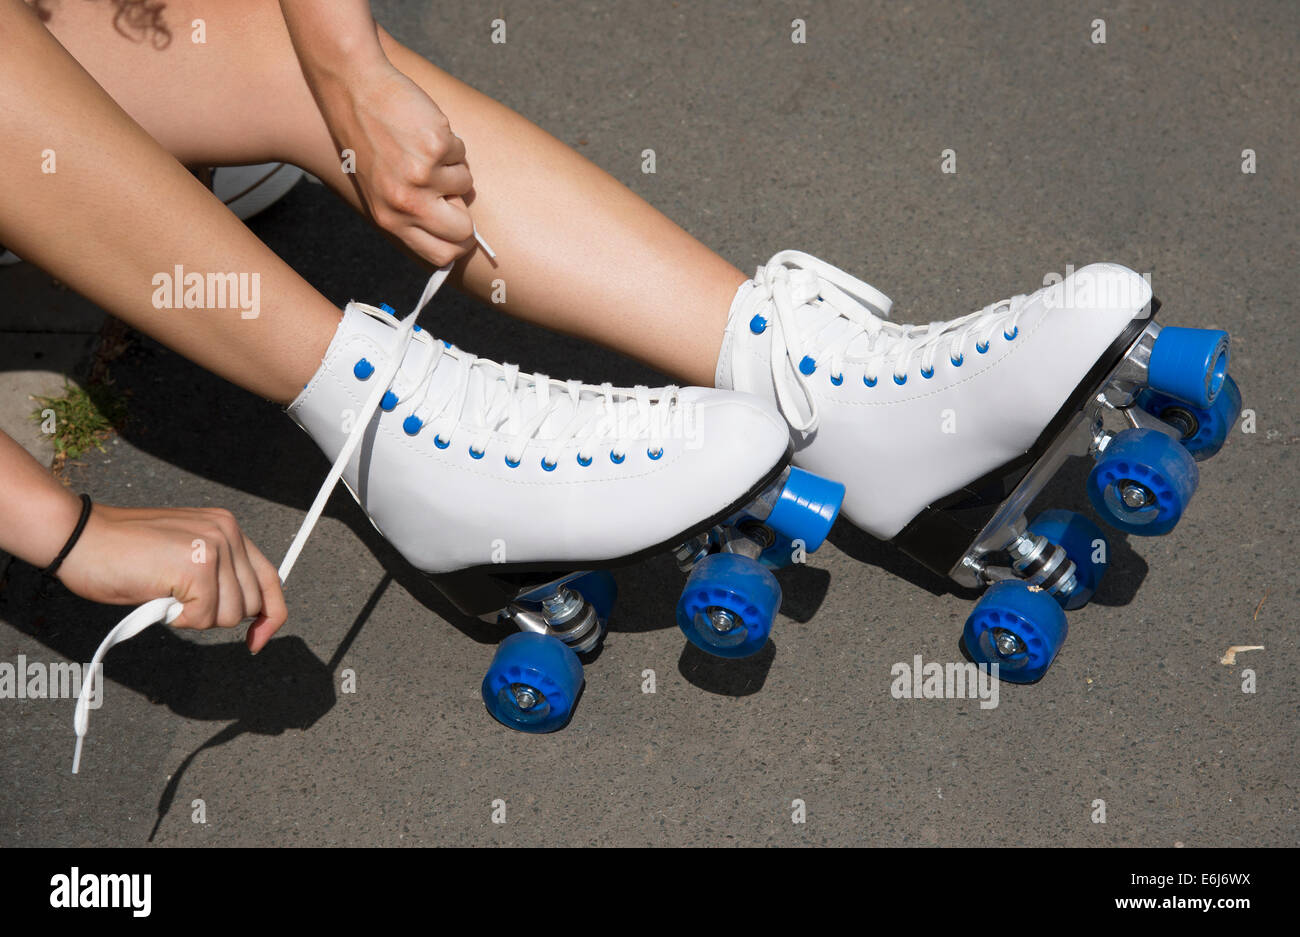 Roller skates winnipeg - Fastening Roller Skates Tying The White Laces Up Of A Pair Of Quad Skates Stock